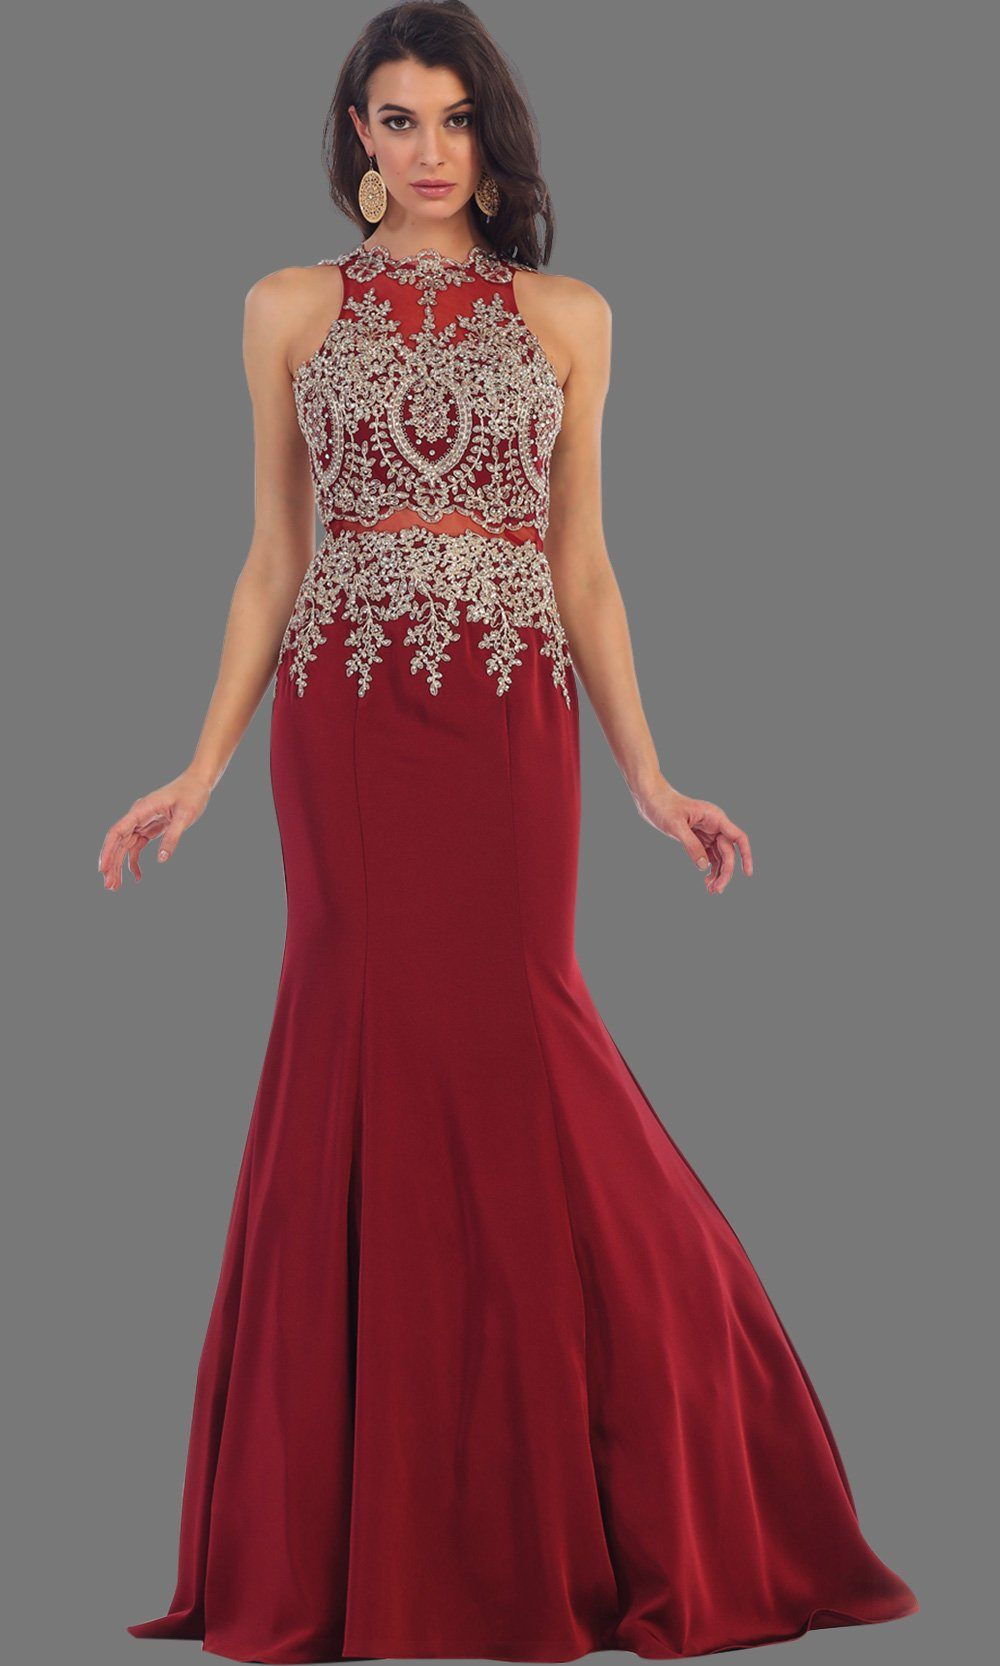 Long burgundy mermaid dress with open back. It has beaded gold lace bodice. Perfect for Prom, dark red engagement dress, wedding reception dress, formal wedding guest dress or party gown. Plus size available.